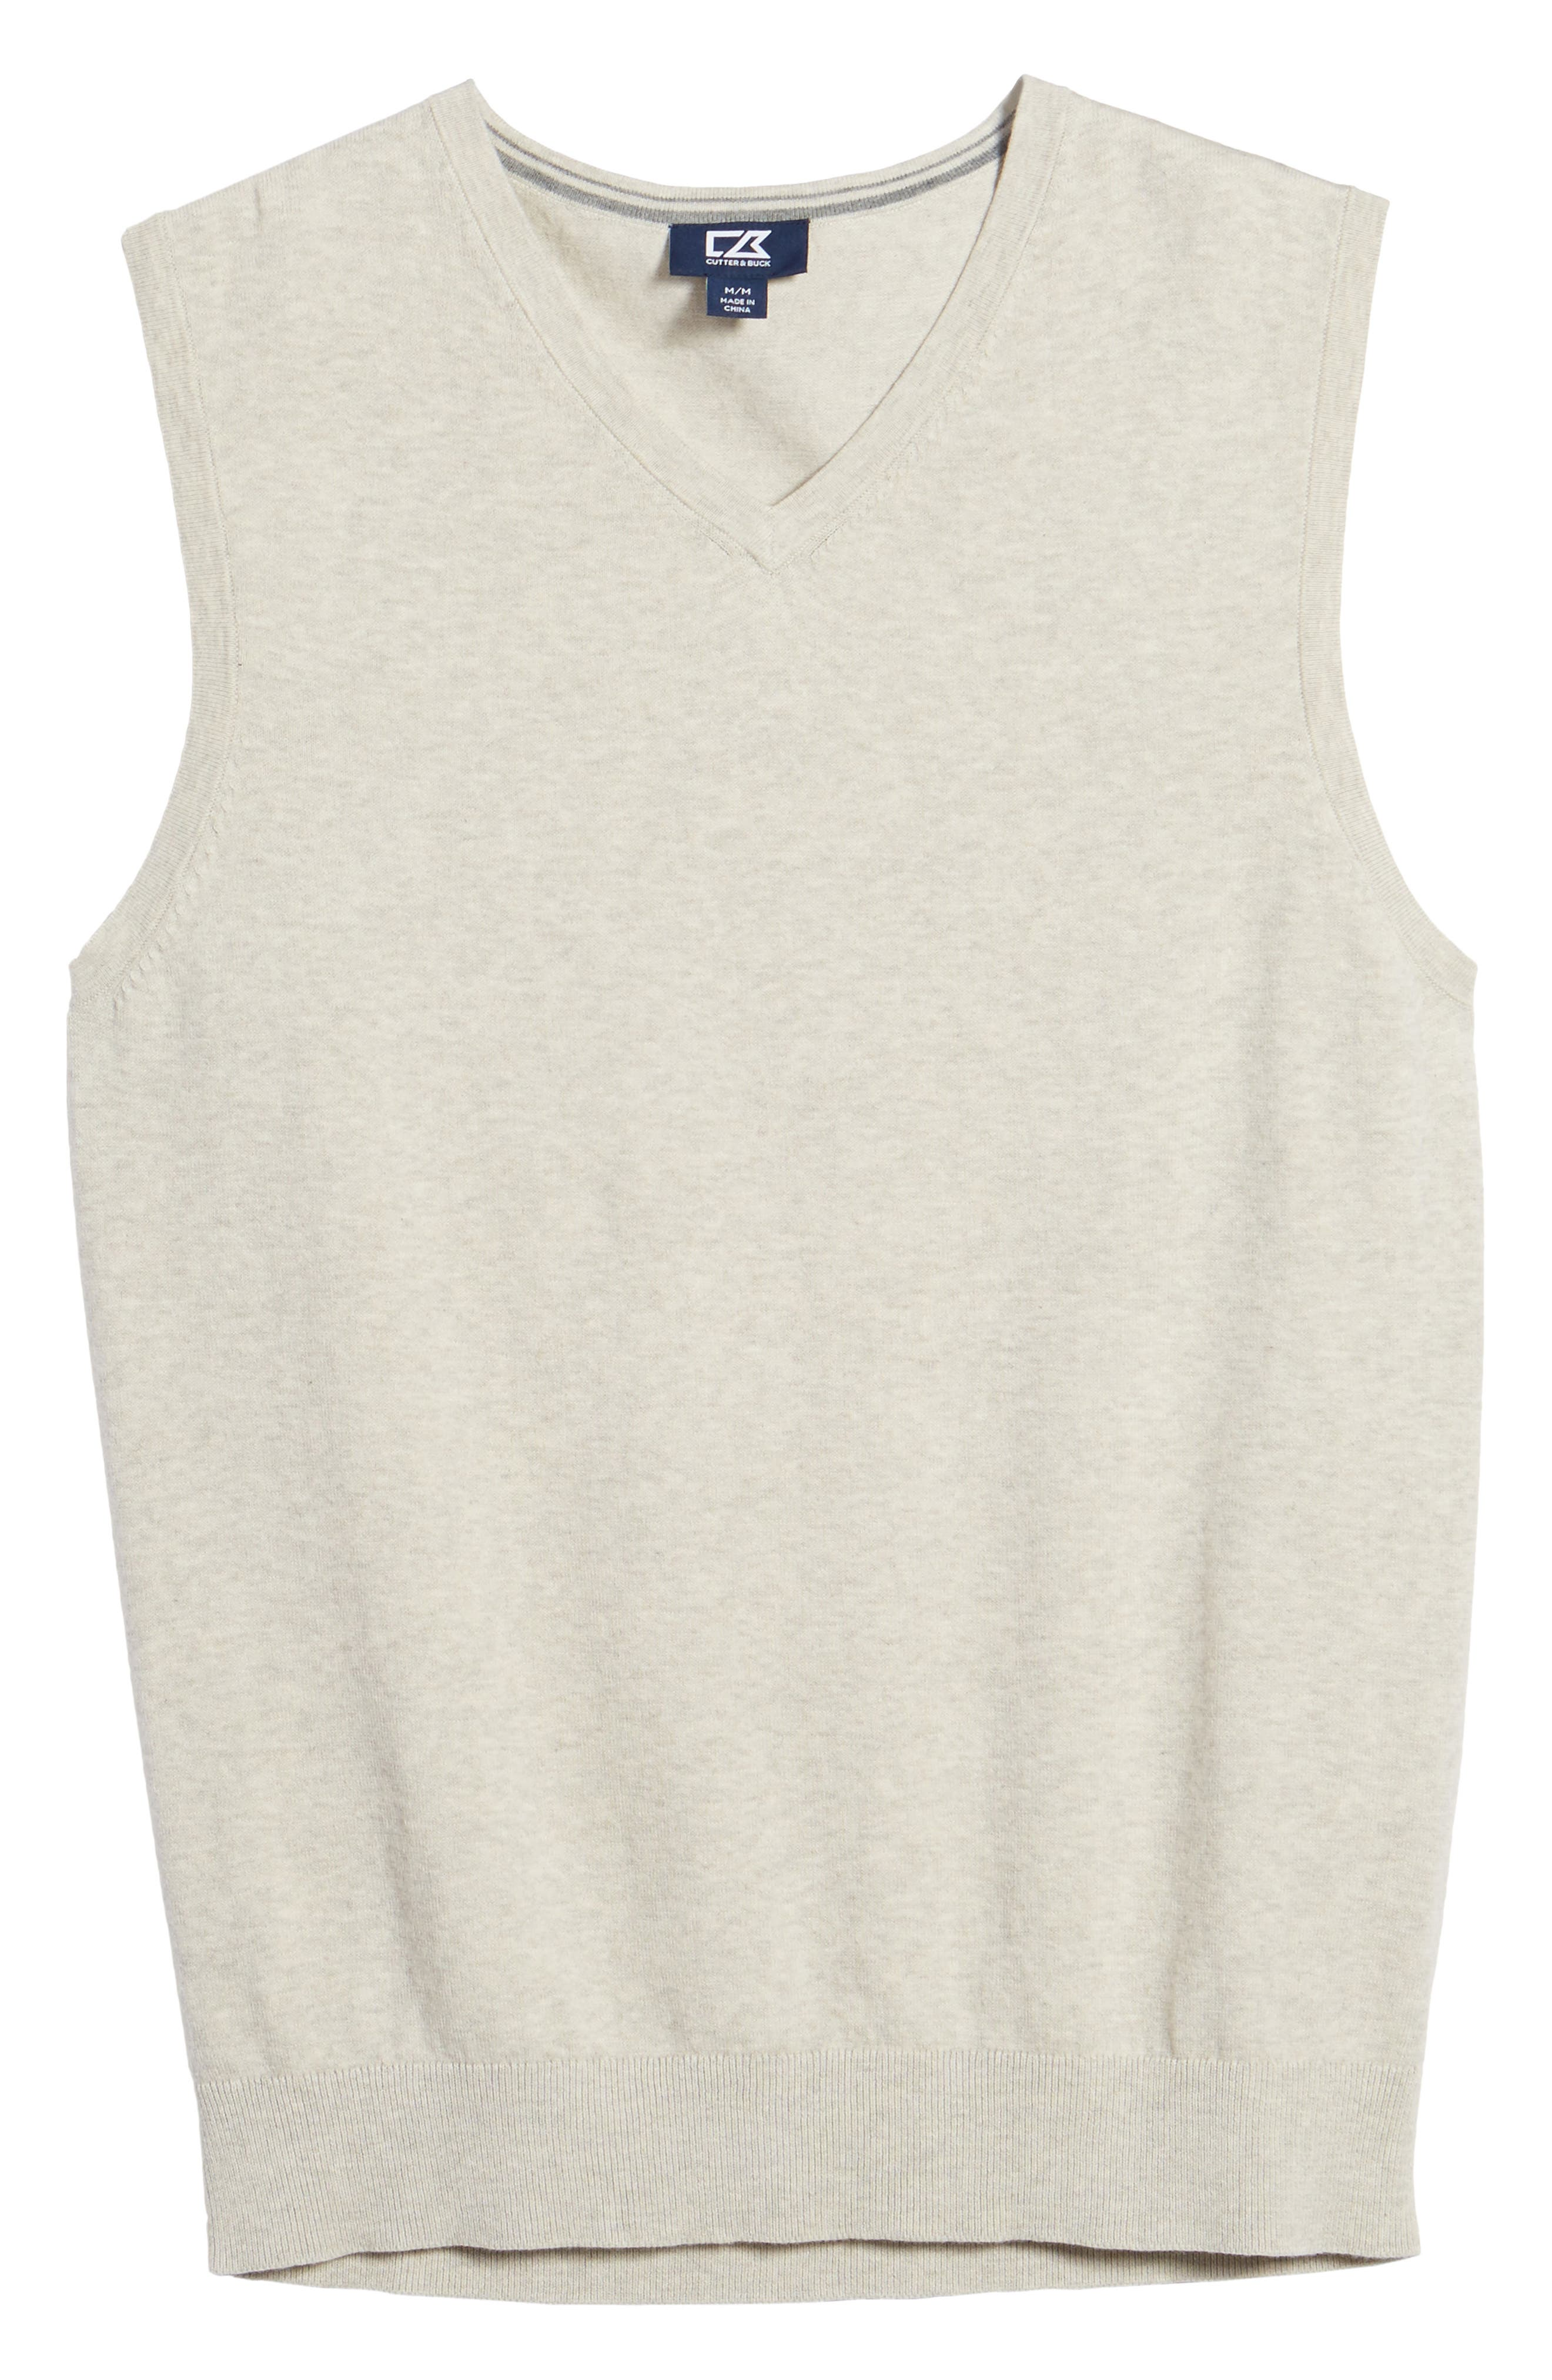 Lakemont Classic Fit Sweater Vest,                             Alternate thumbnail 6, color,                             OATMEAL HEATHER